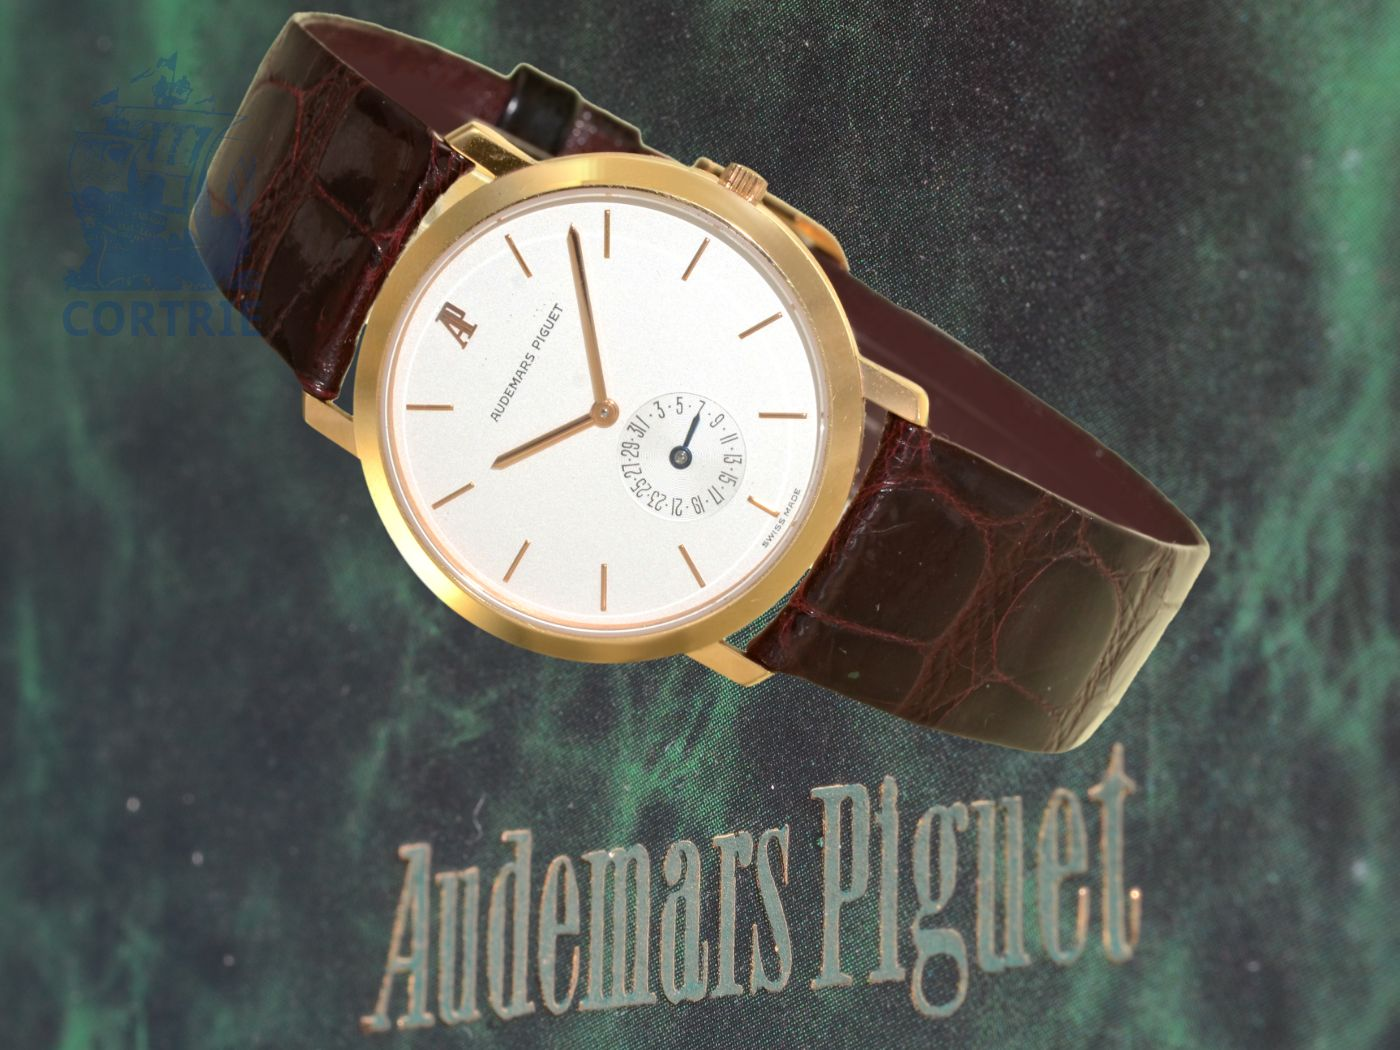 Wristwatch: very fine and elegant Audemars Piguet Classic, 18K pink gold, ref. OR25660, probably unused, with box and certificates-